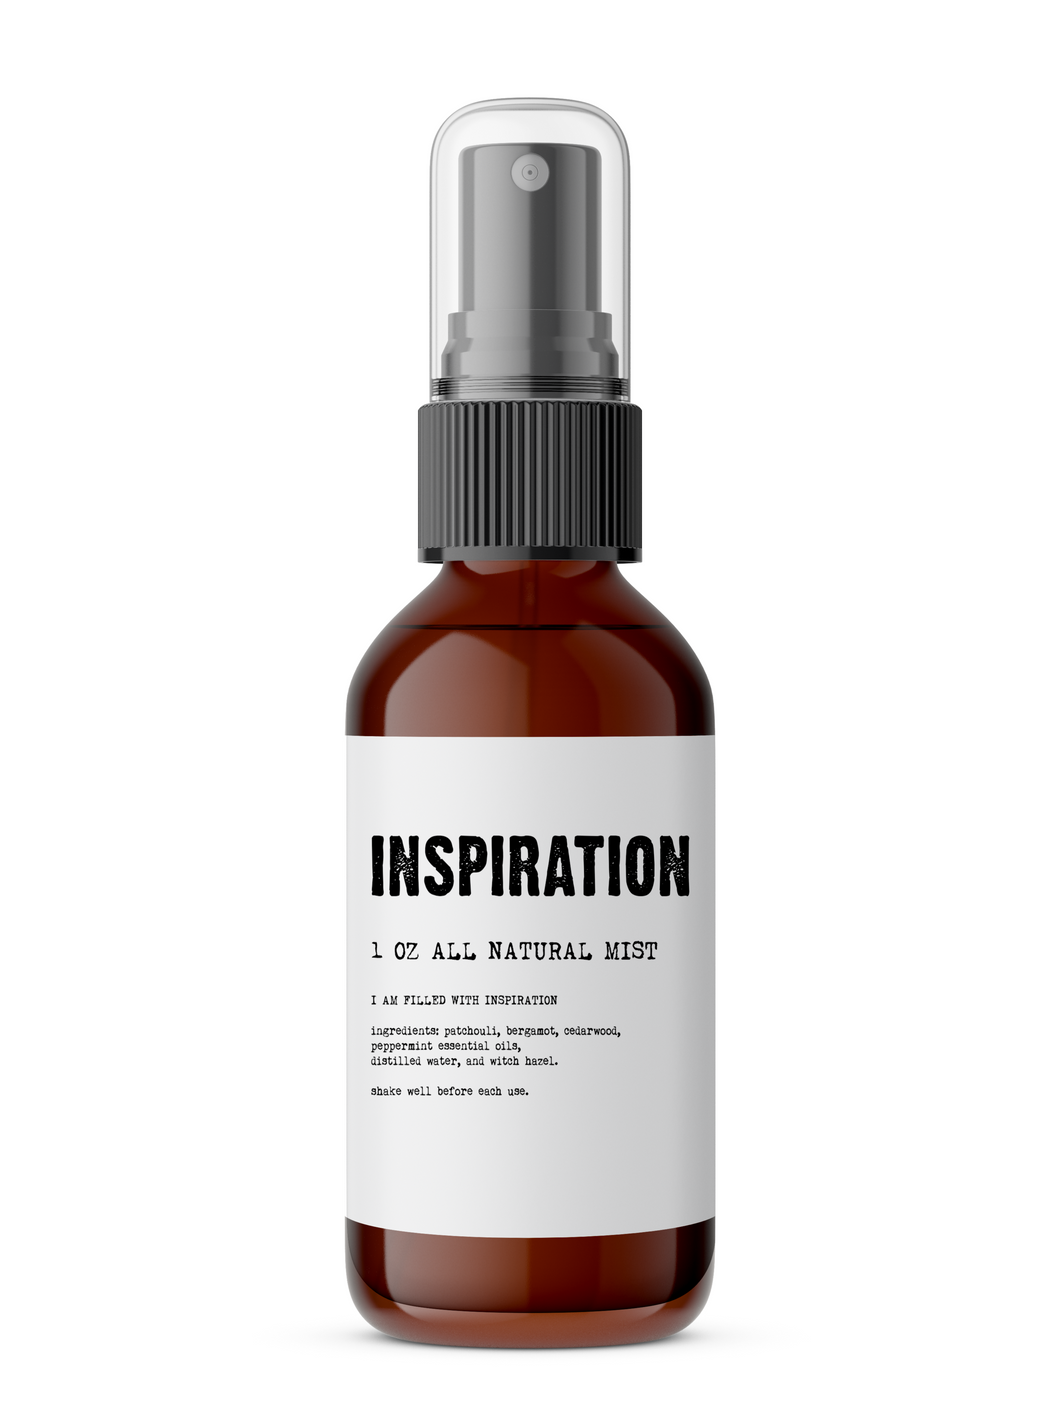 Inspiration - Meditation/Body Mist - Made with All Natural Ingredients